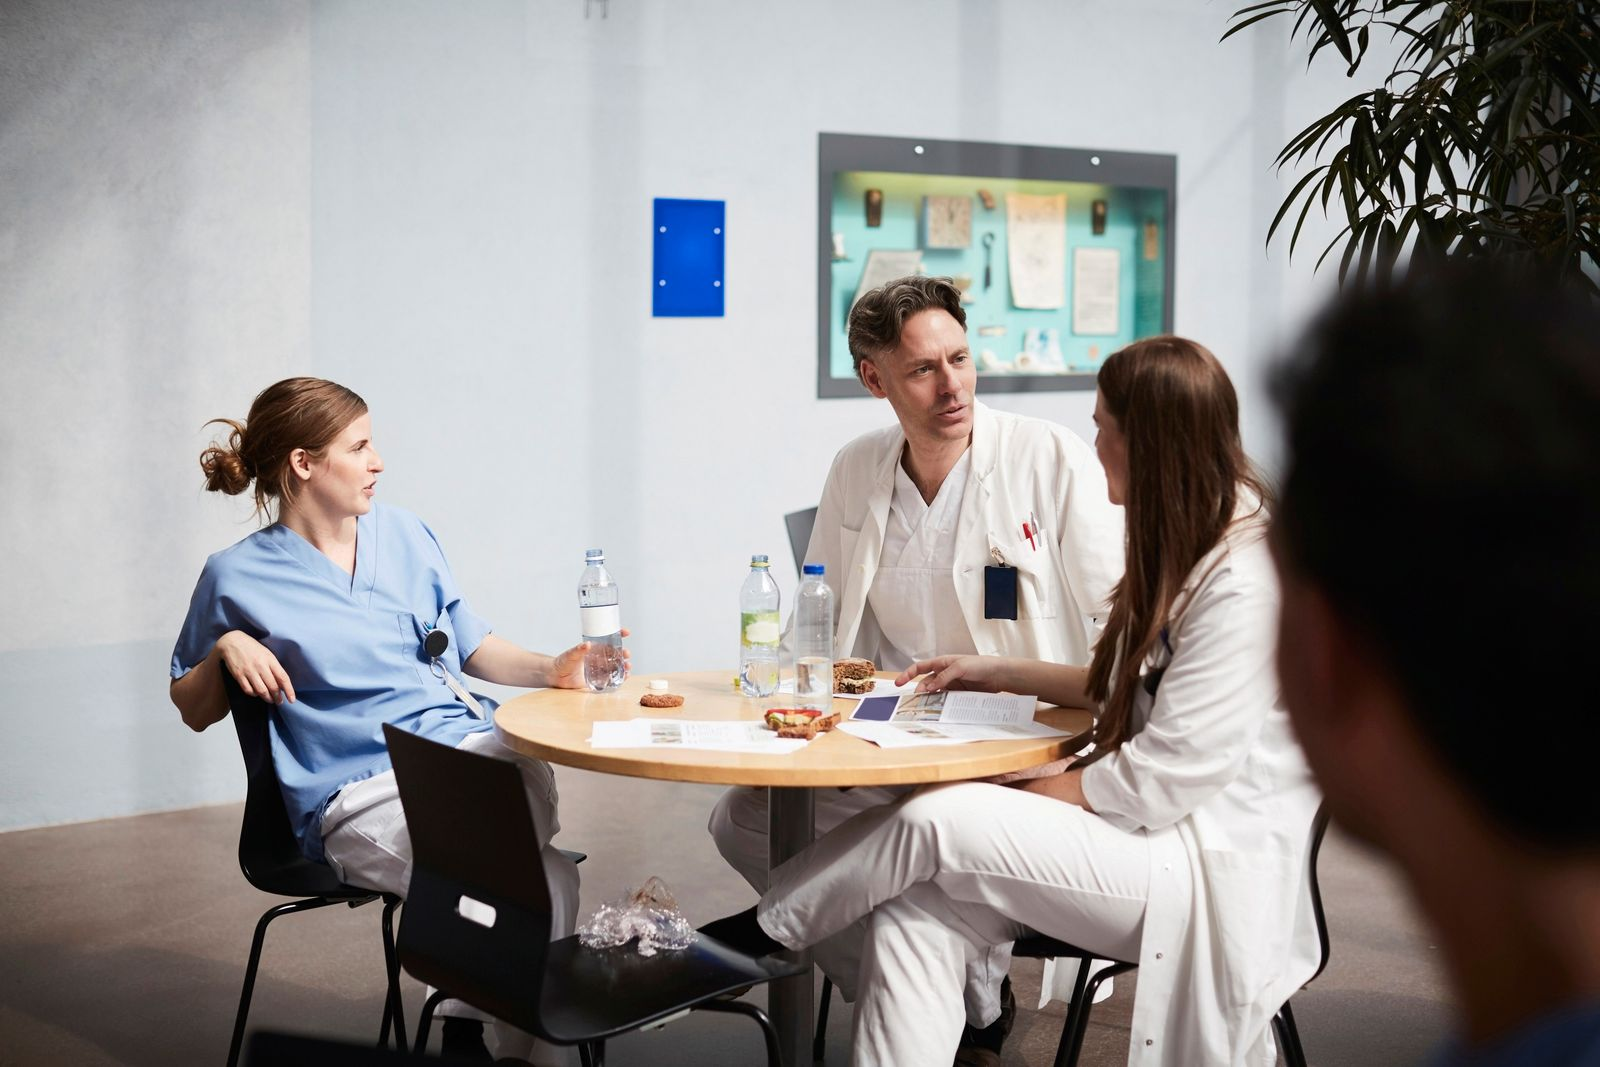 Confident mature doctor discussing with female coworkers while sitting at table in hospital cafeteria